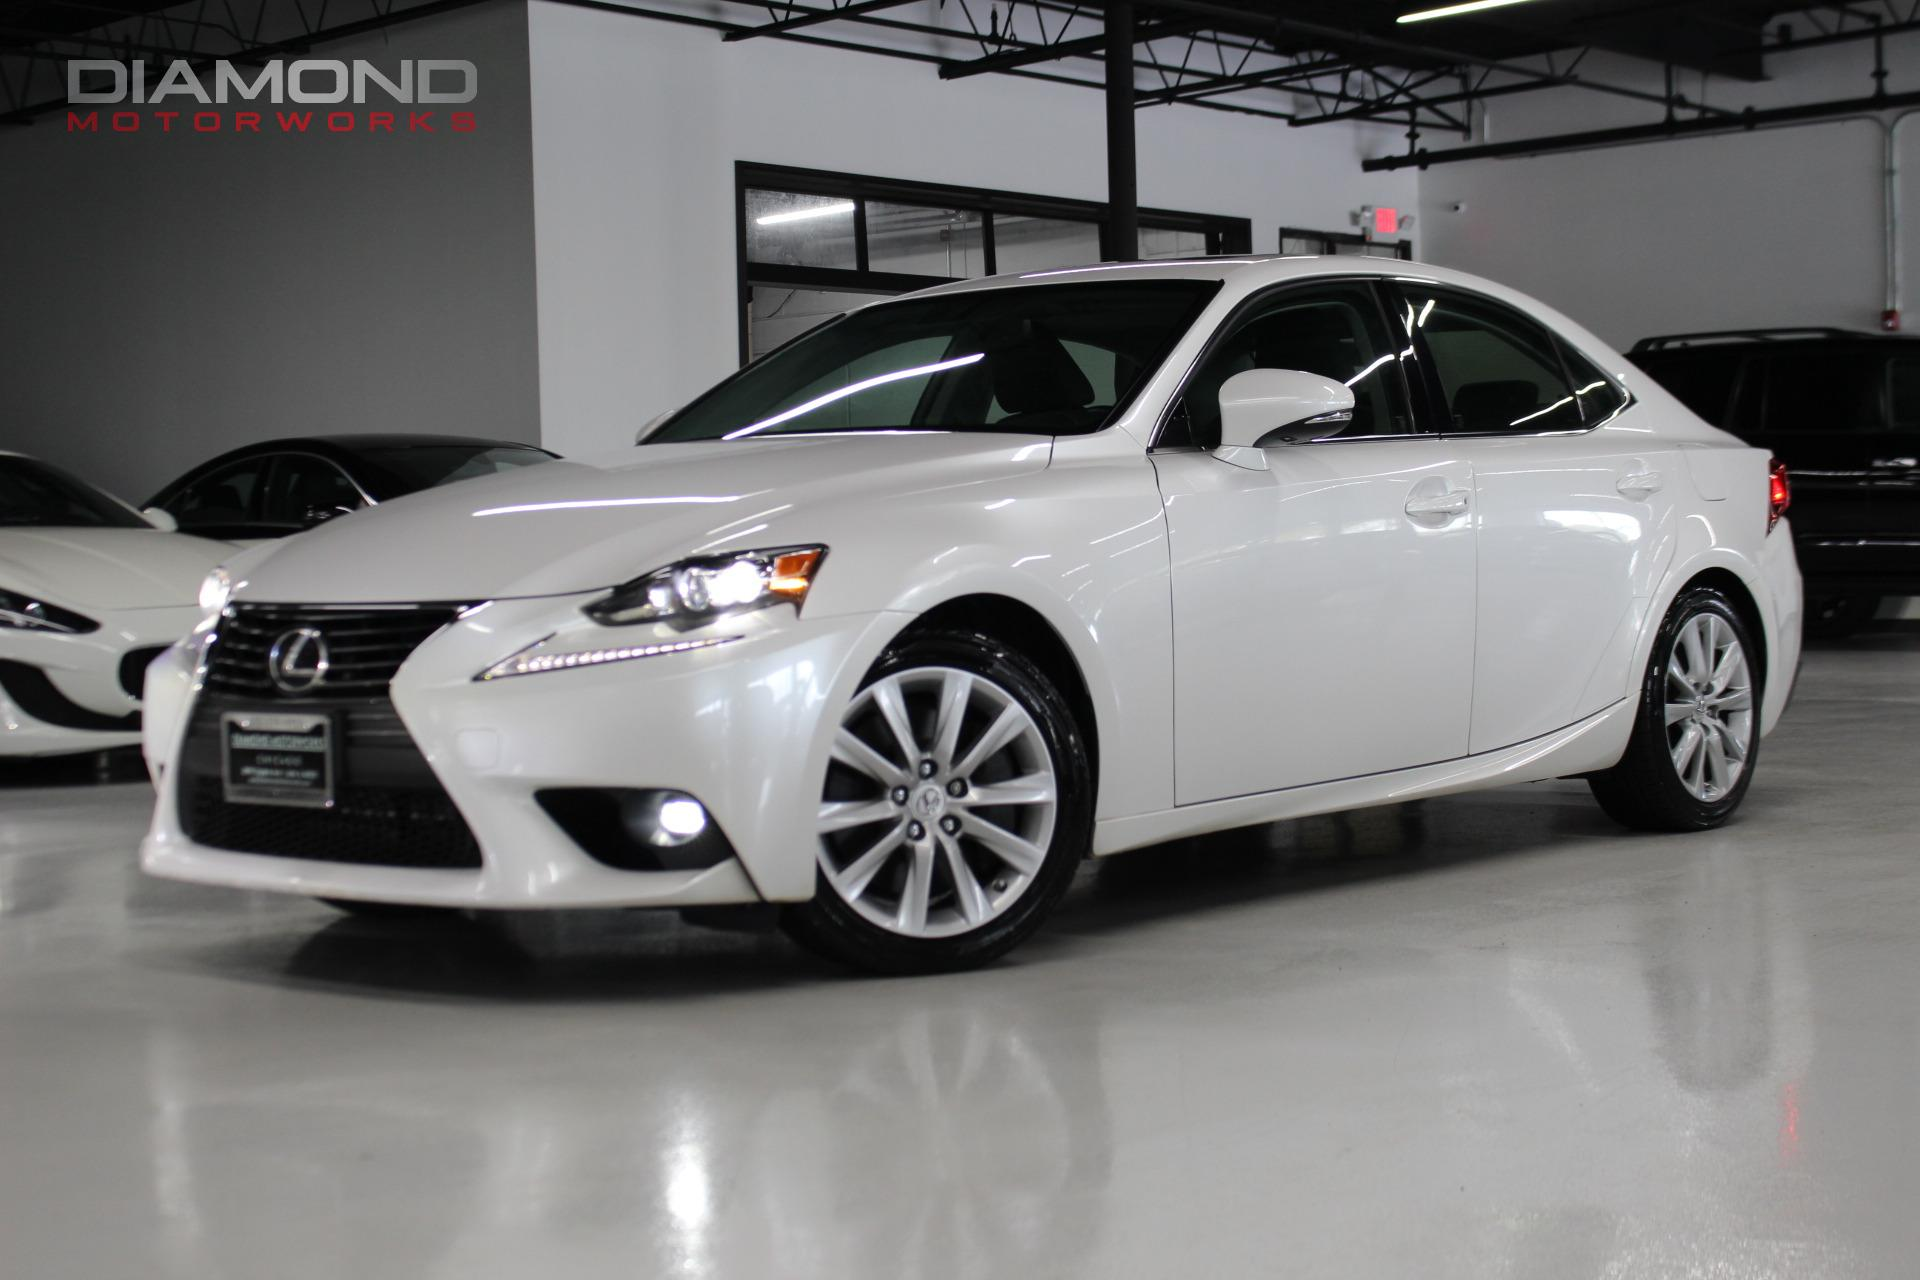 2016 Lexus Is 300 Stock 004917 For Sale Near Lisle Il